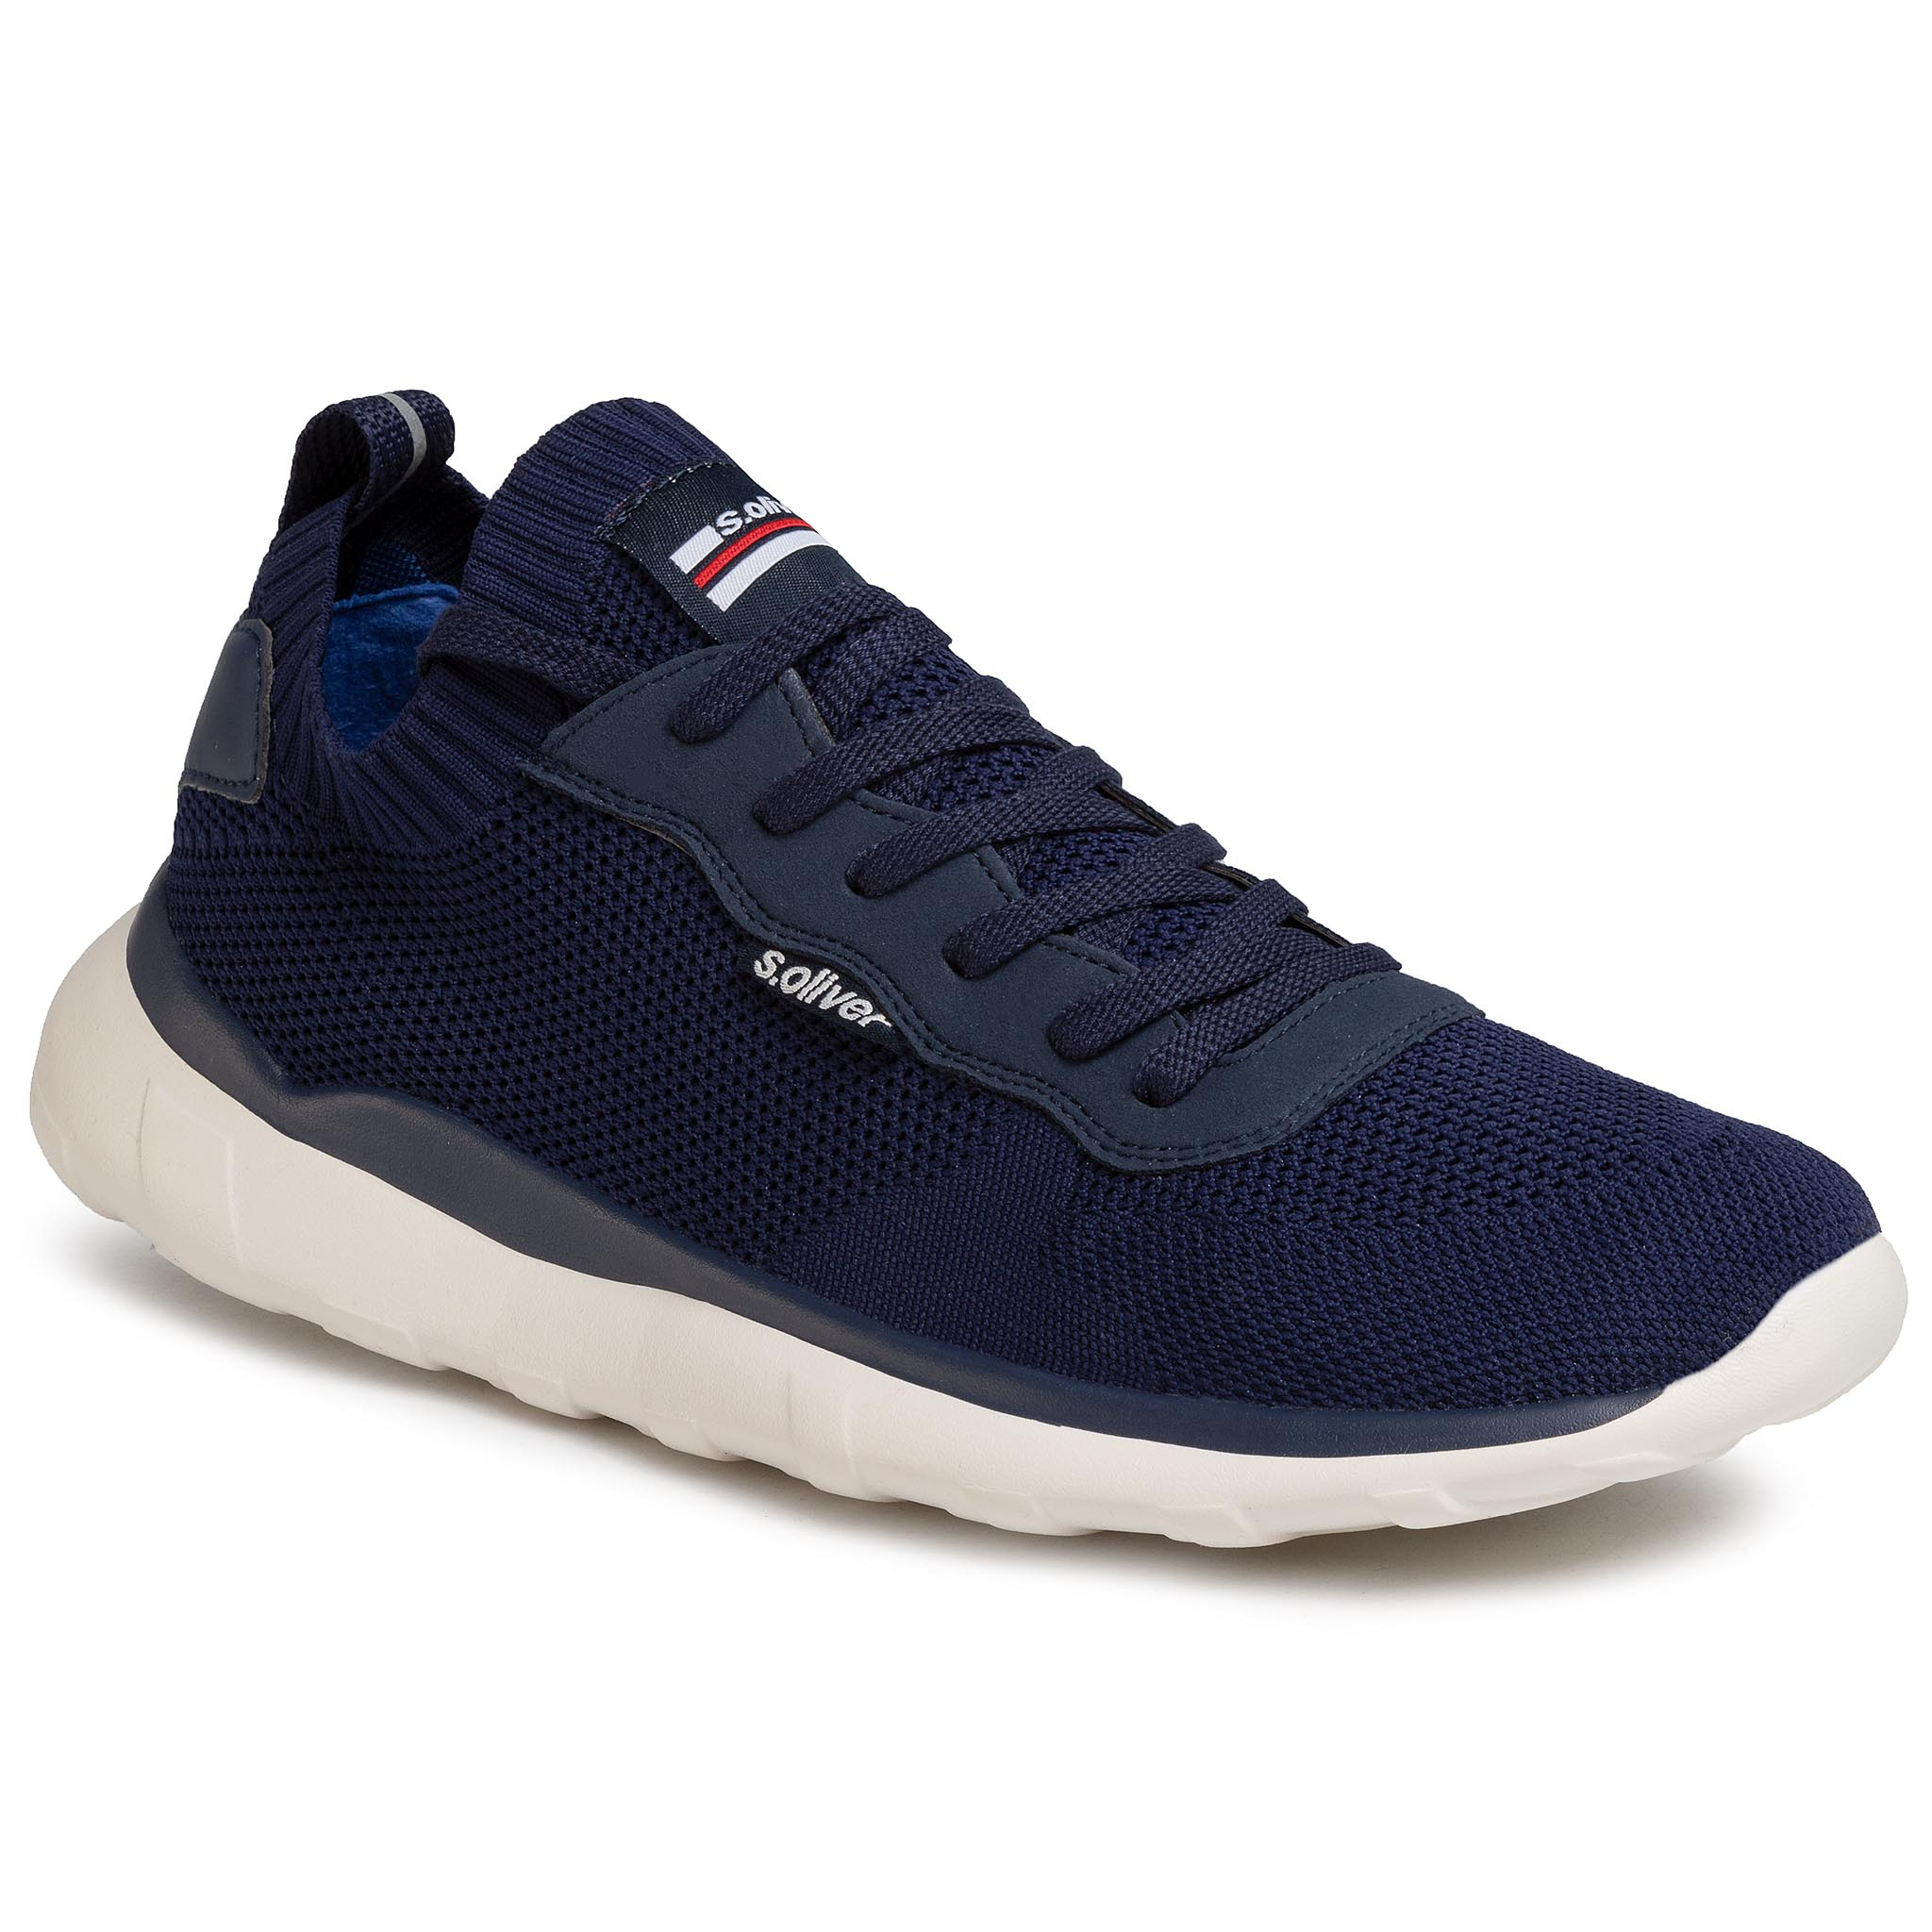 Sneakers S.Oliver - 5-13642-34 Navy 805 imagine